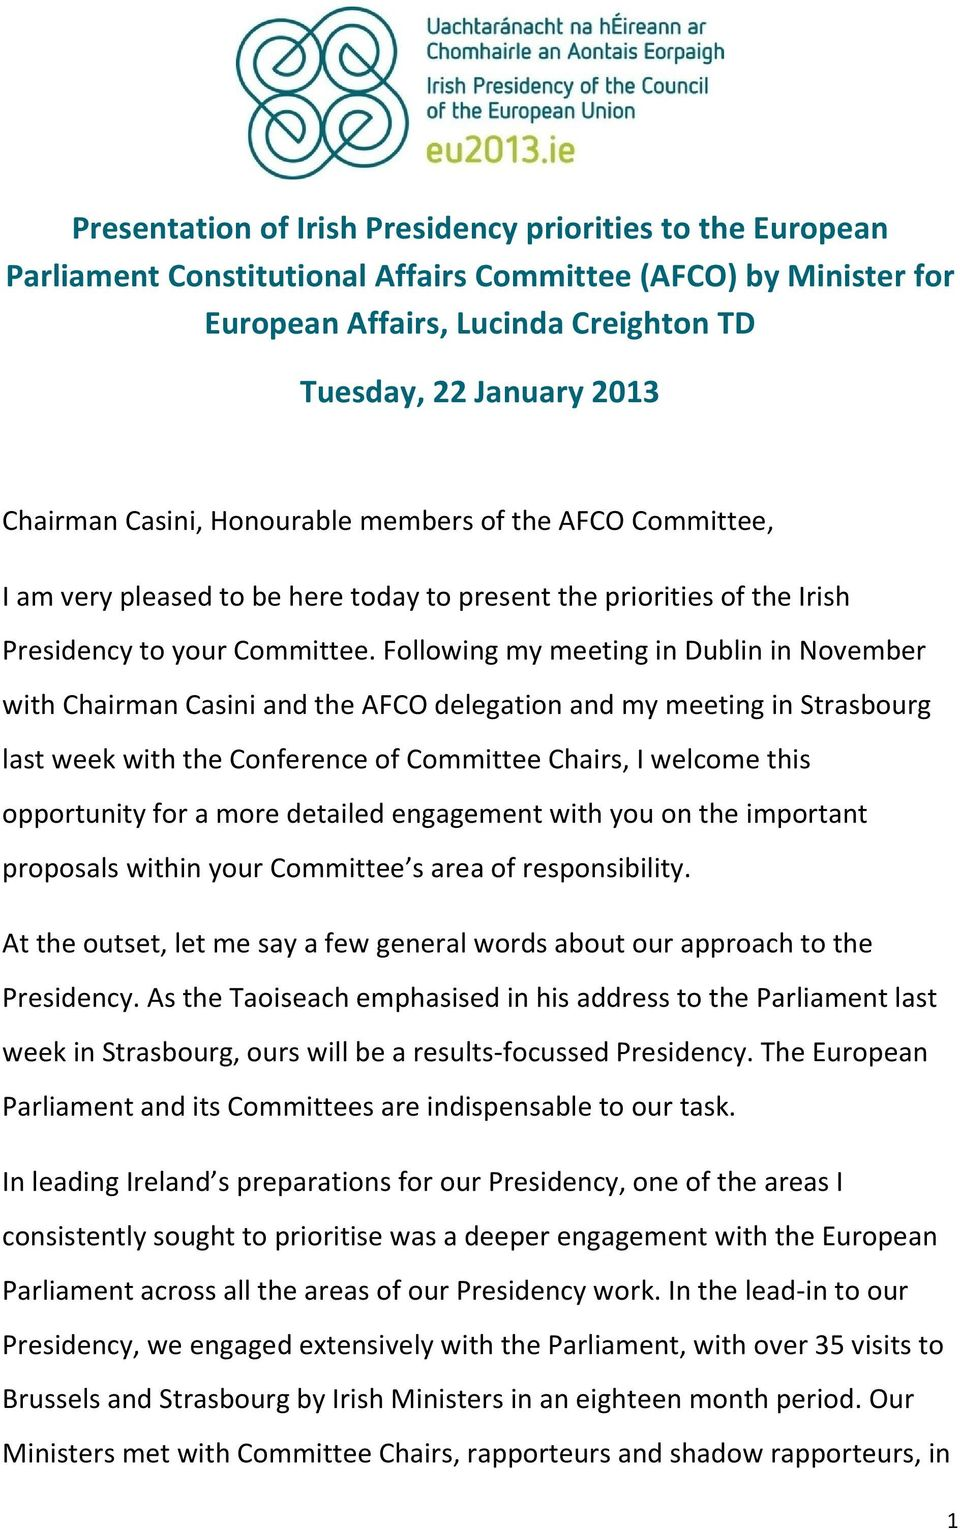 Following my meeting in Dublin in November with Chairman Casini and the AFCO delegation and my meeting in Strasbourg last week with the Conference of Committee Chairs, I welcome this opportunity for